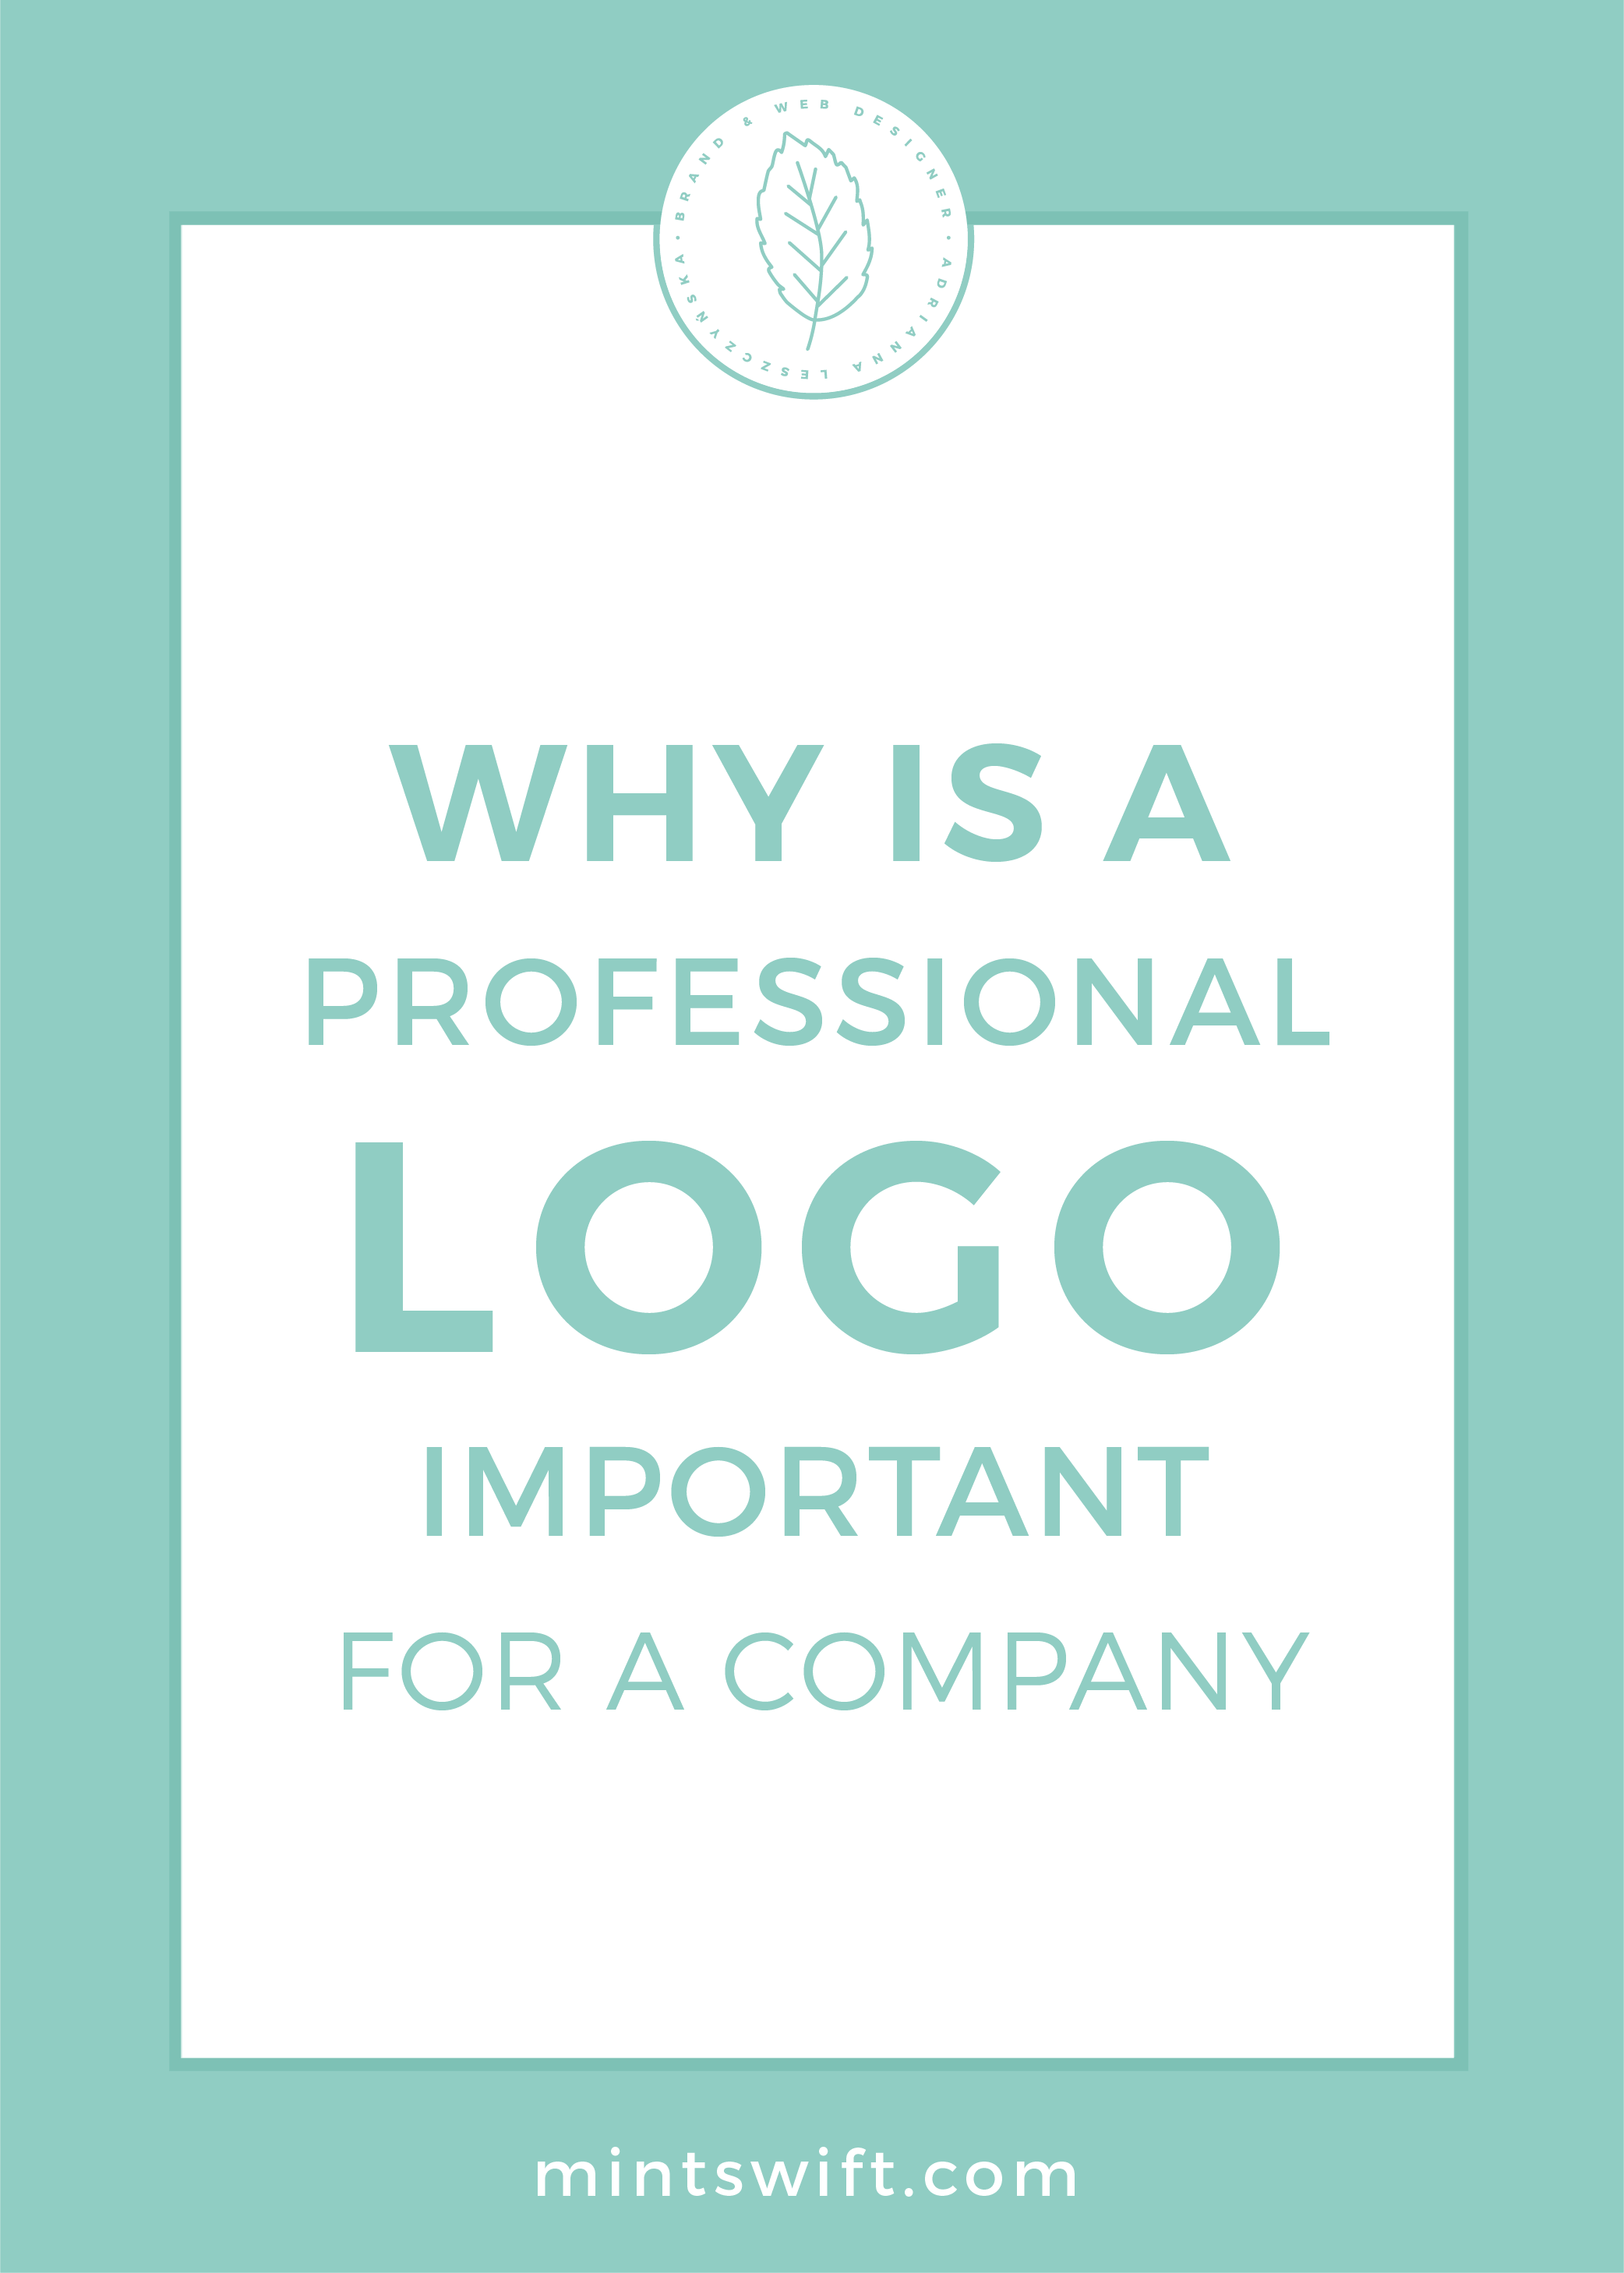 Why is a Professional Logo Important for a Company by MintSwift